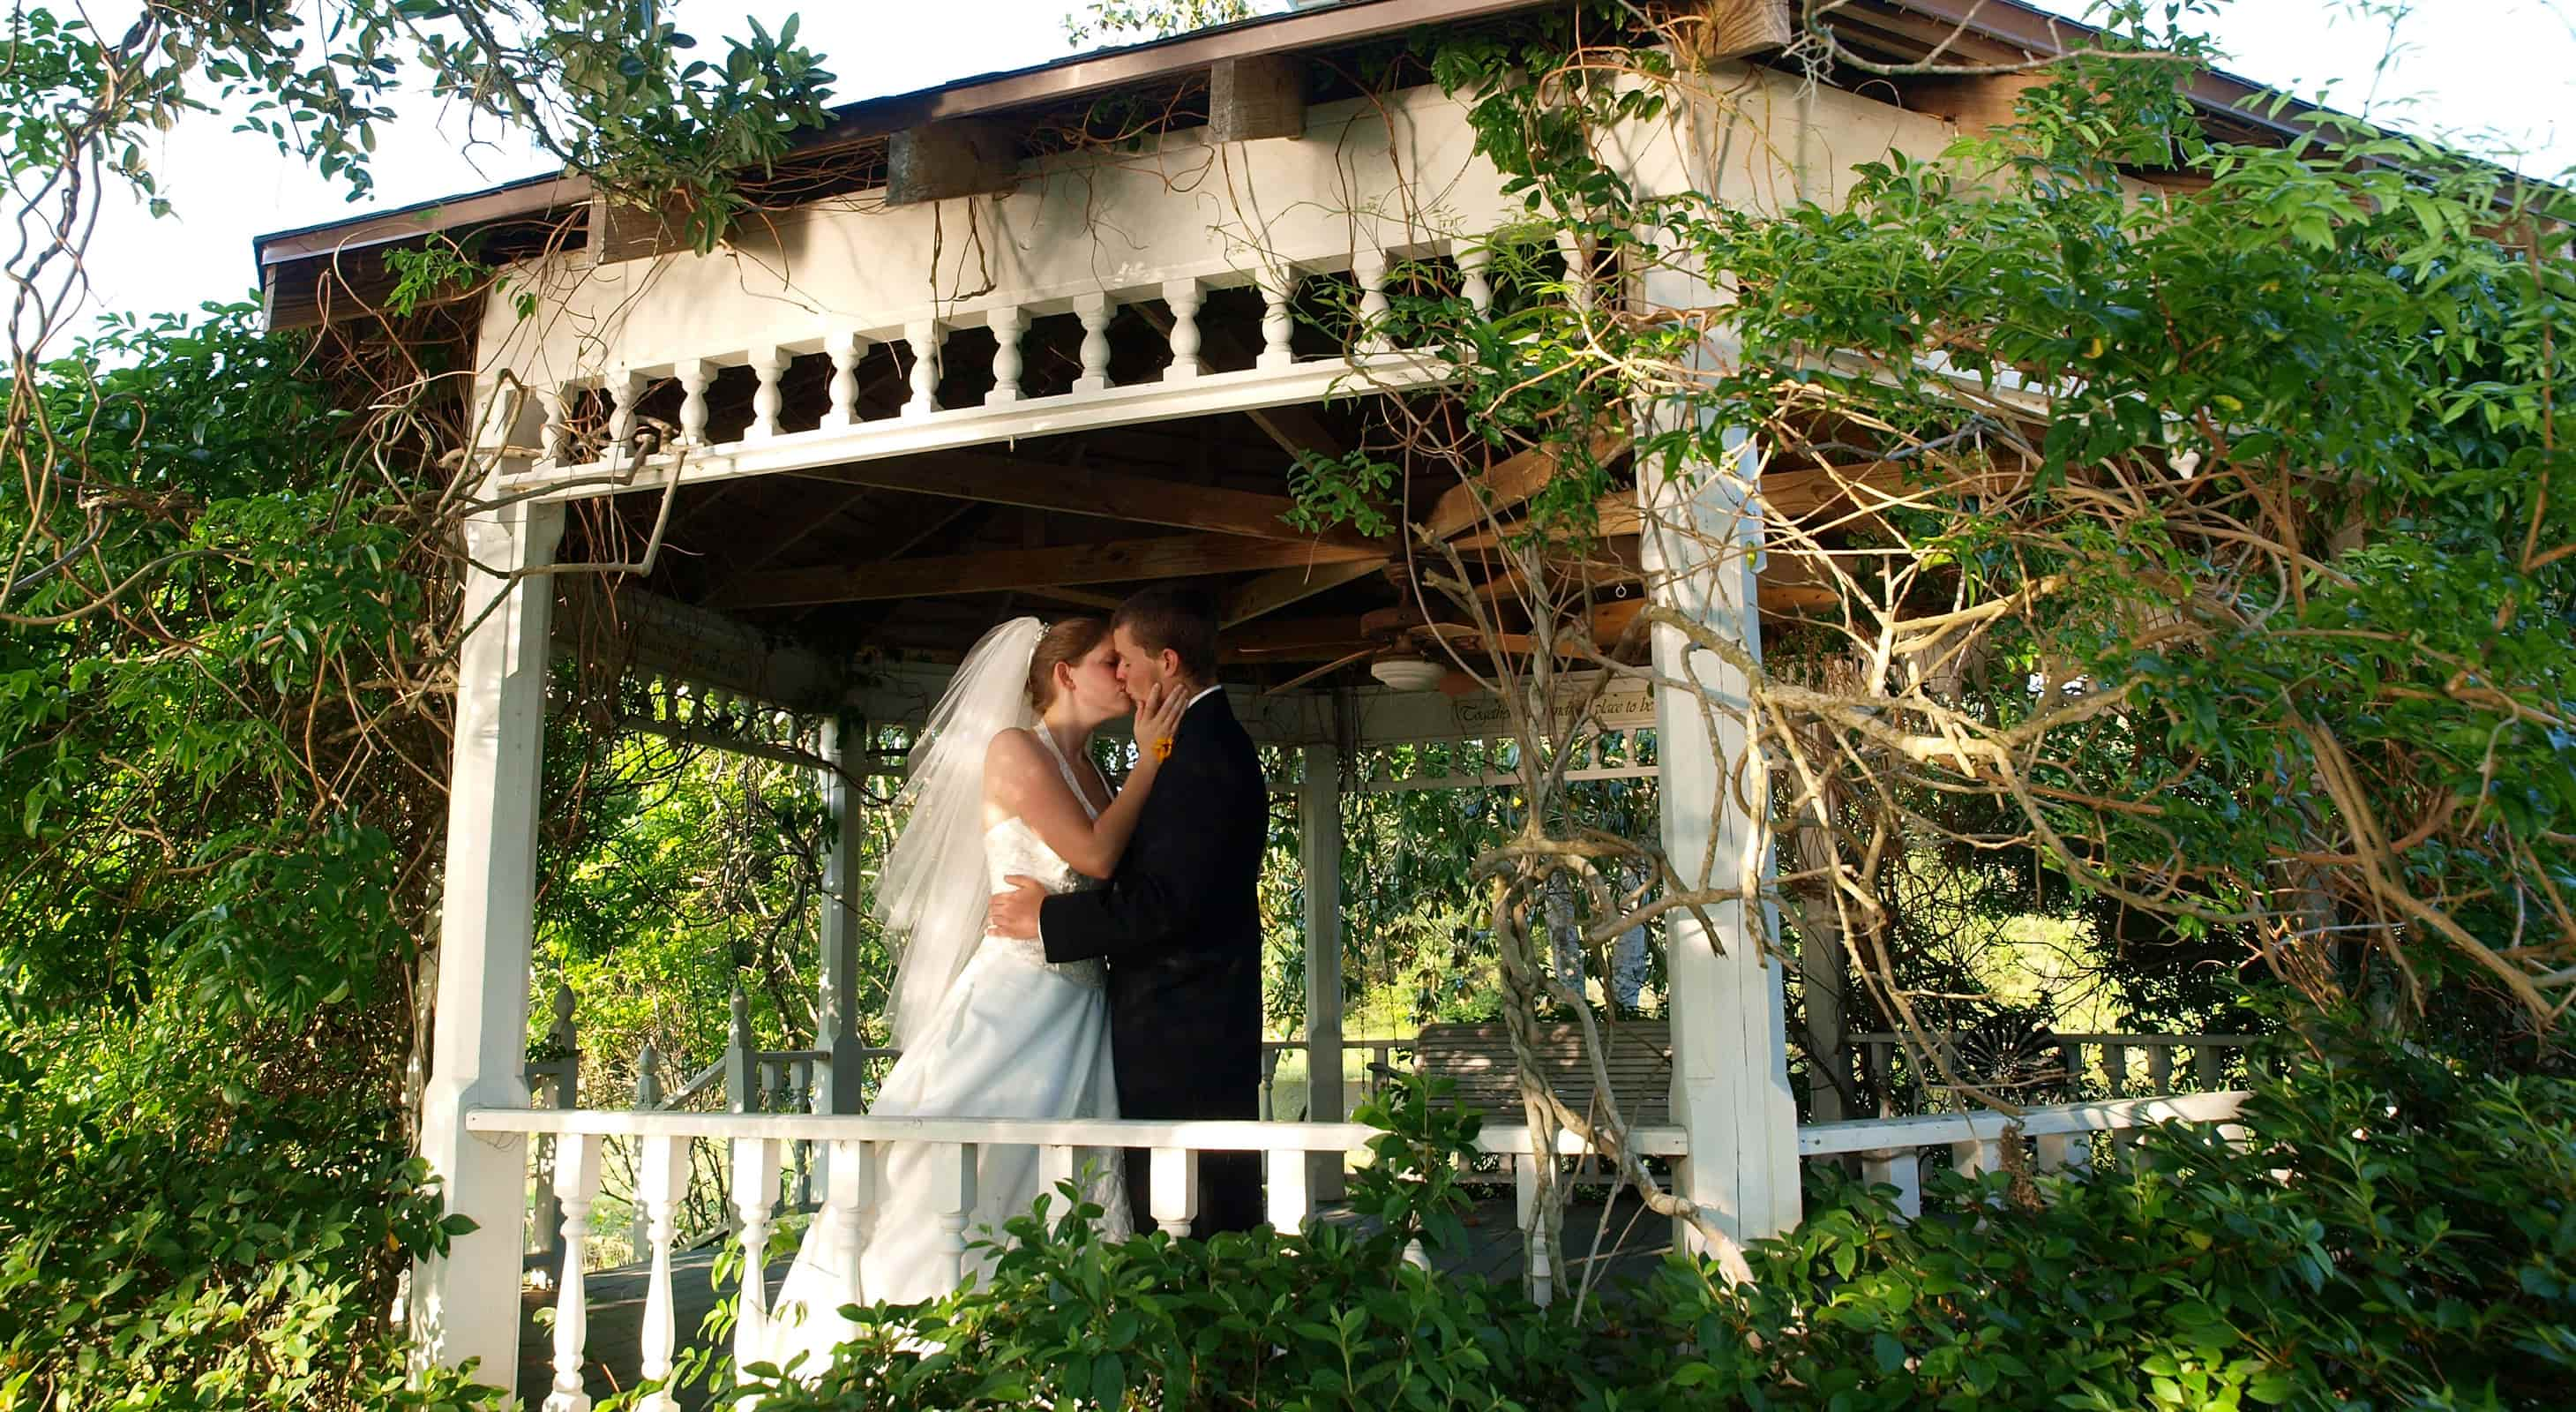 Romantic elopements in our Gazebo at Enchanted lake with a Texas elopement package